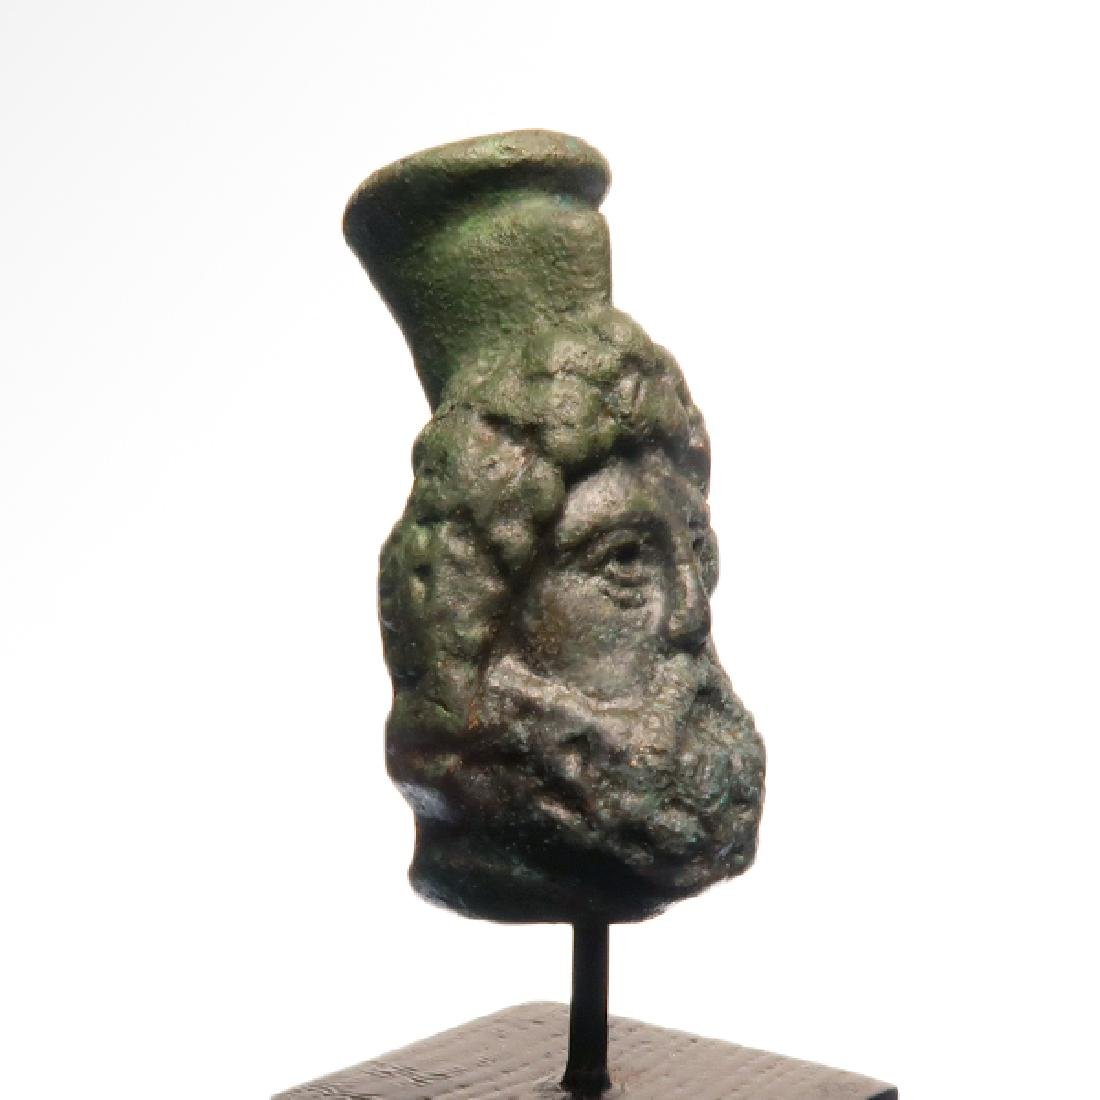 Roman Bronze Head of Zeus-Serapis, c. 1st Century A.D. - 3